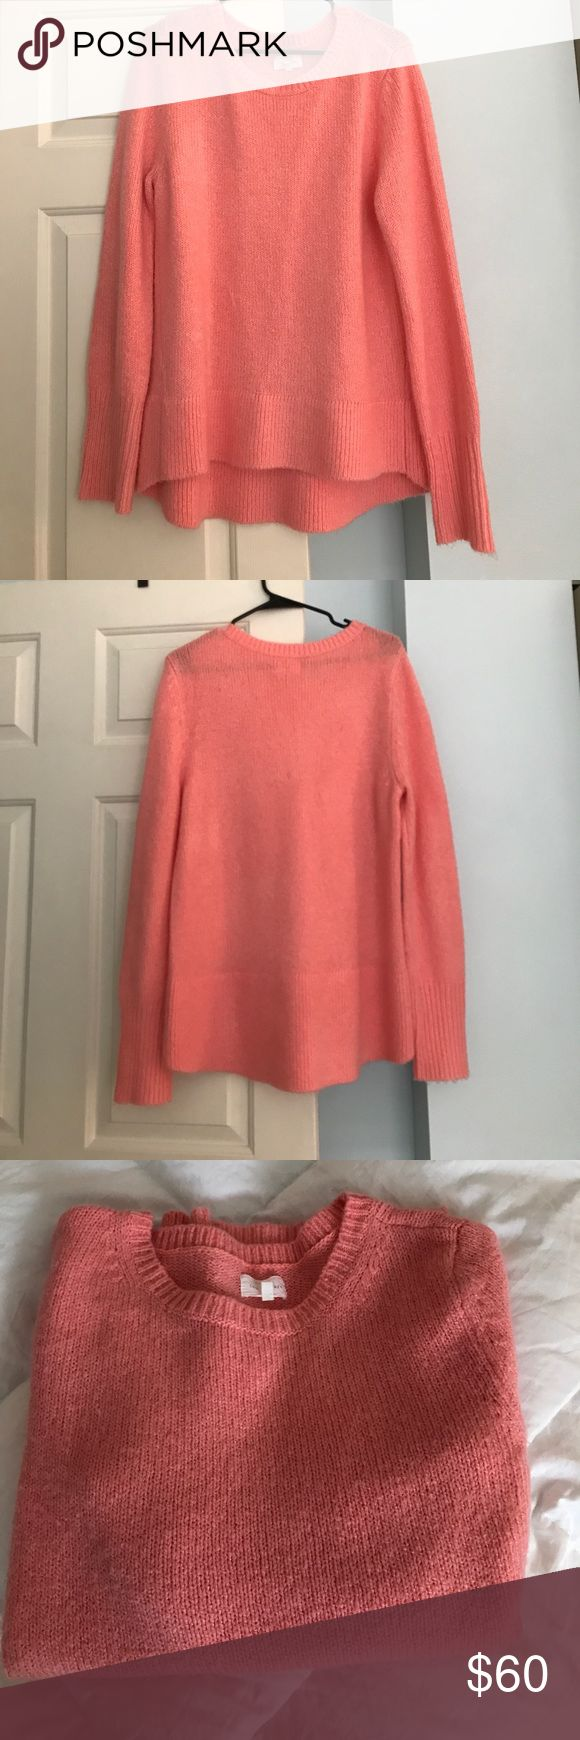 Lou & Gray Peachy/Pink Knit Sweater Worn once Lou & Gray knit sweater. Super bright and unique pinkish/peach color. The 5th pic is probably the truest representation of color. Size L. High/low effect but not obnoxious. 89% acrylic, 10% Polyester, 1% spandex. Beyond soft and fluffy! I wore it over a navy midi skirt and ankle boots. Lou & Grey Sweaters